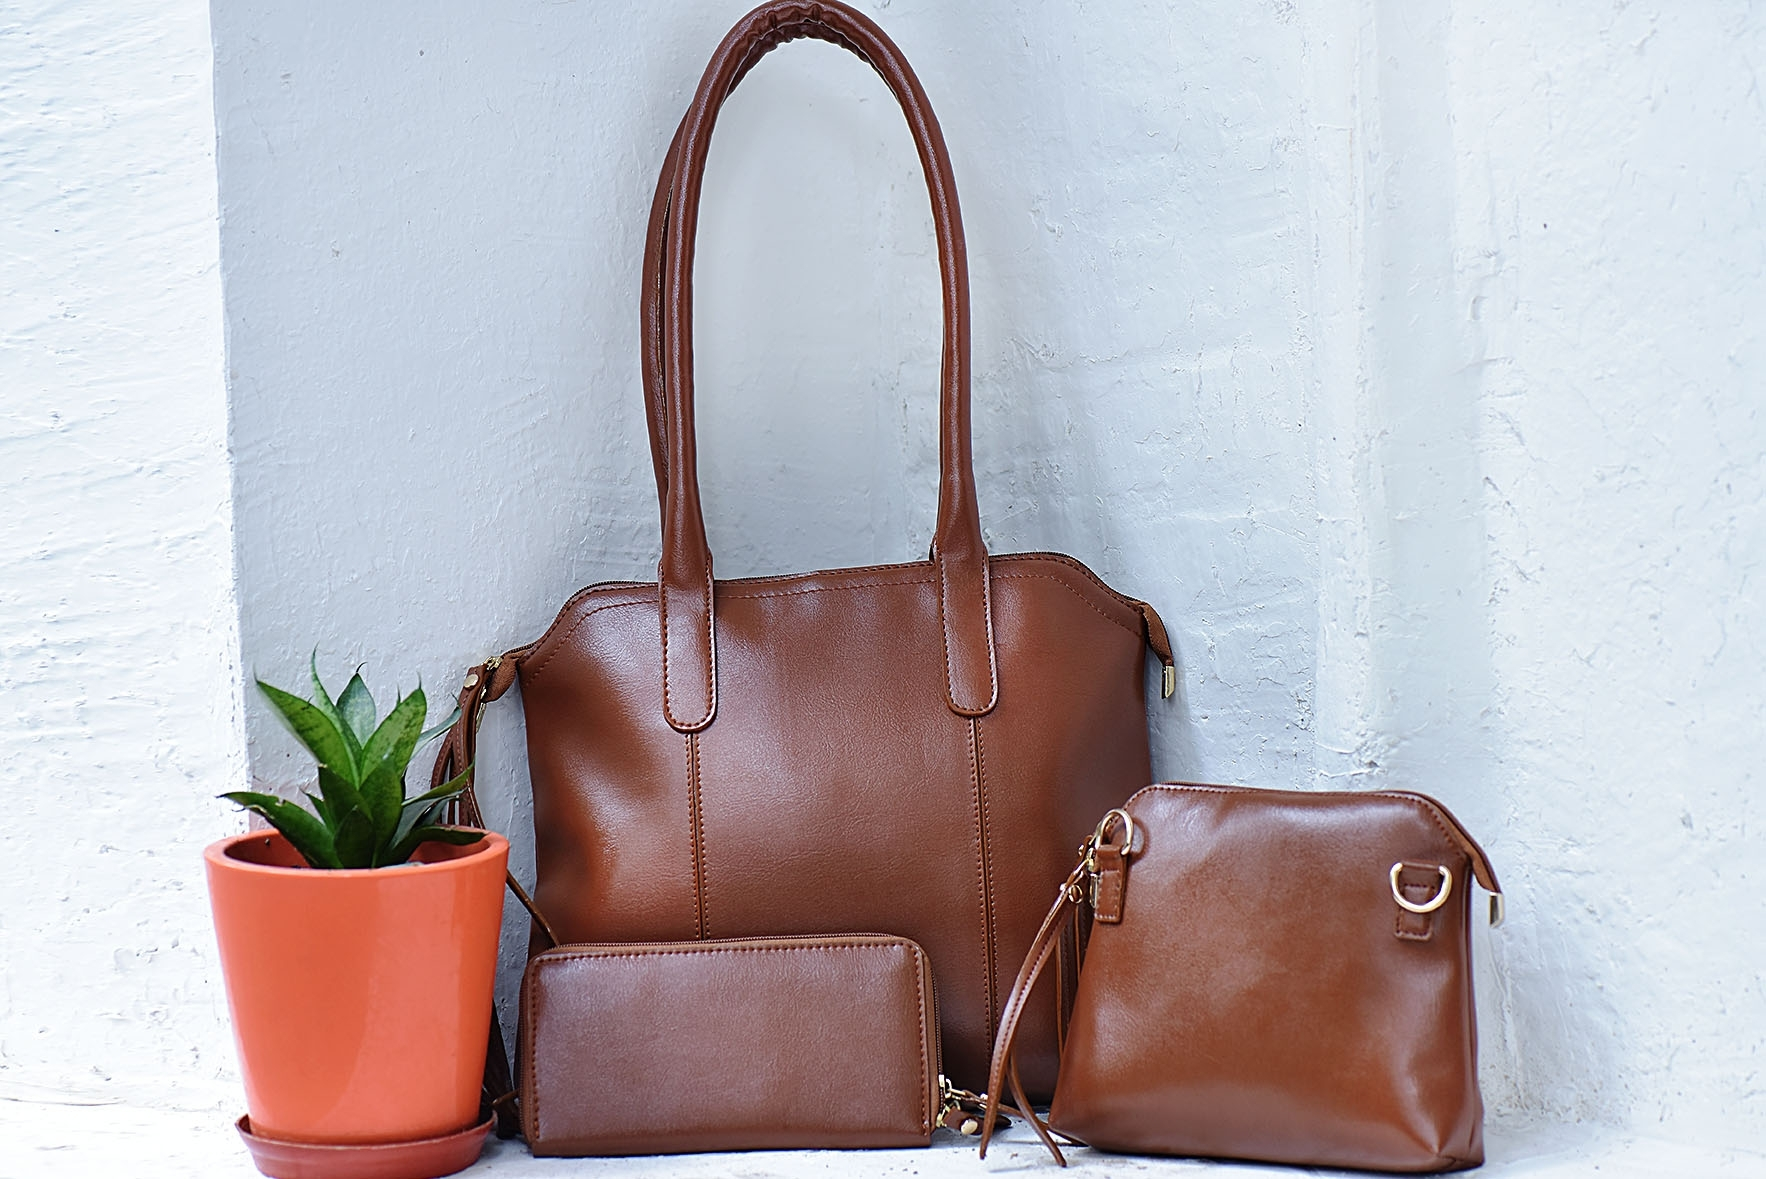 Set of 3 - Carry more sunshine bags Brown